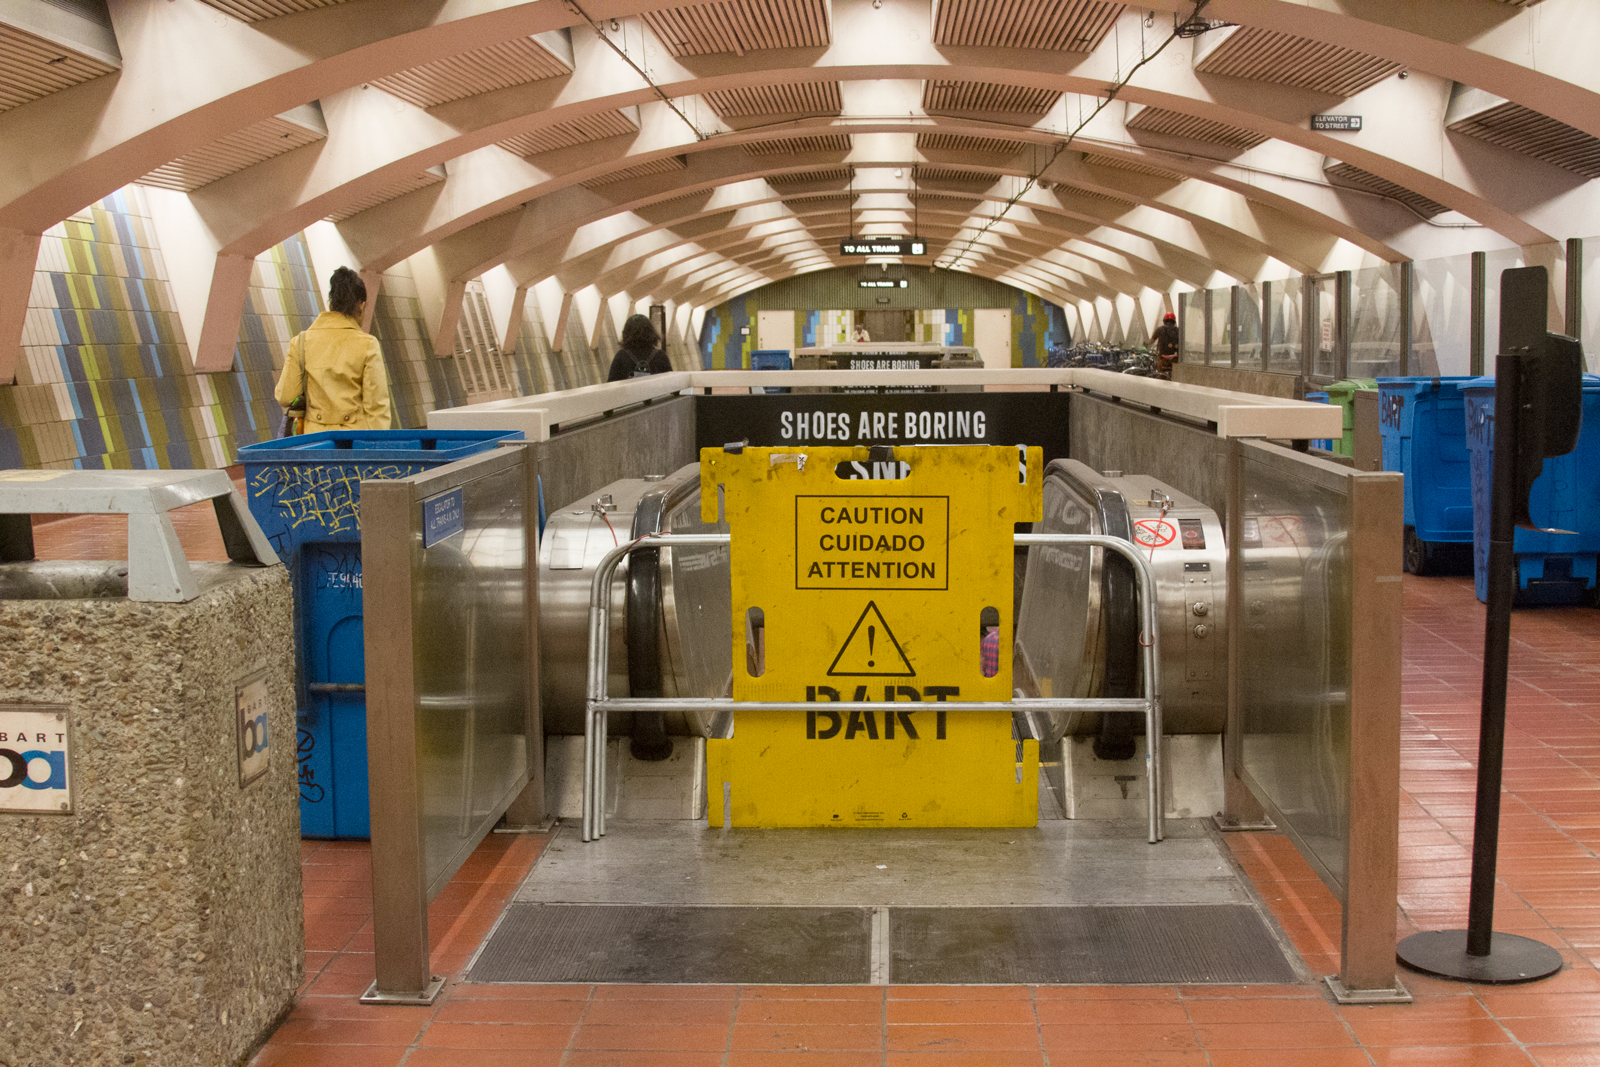 Escalator Gone Bust at 16th Street BART